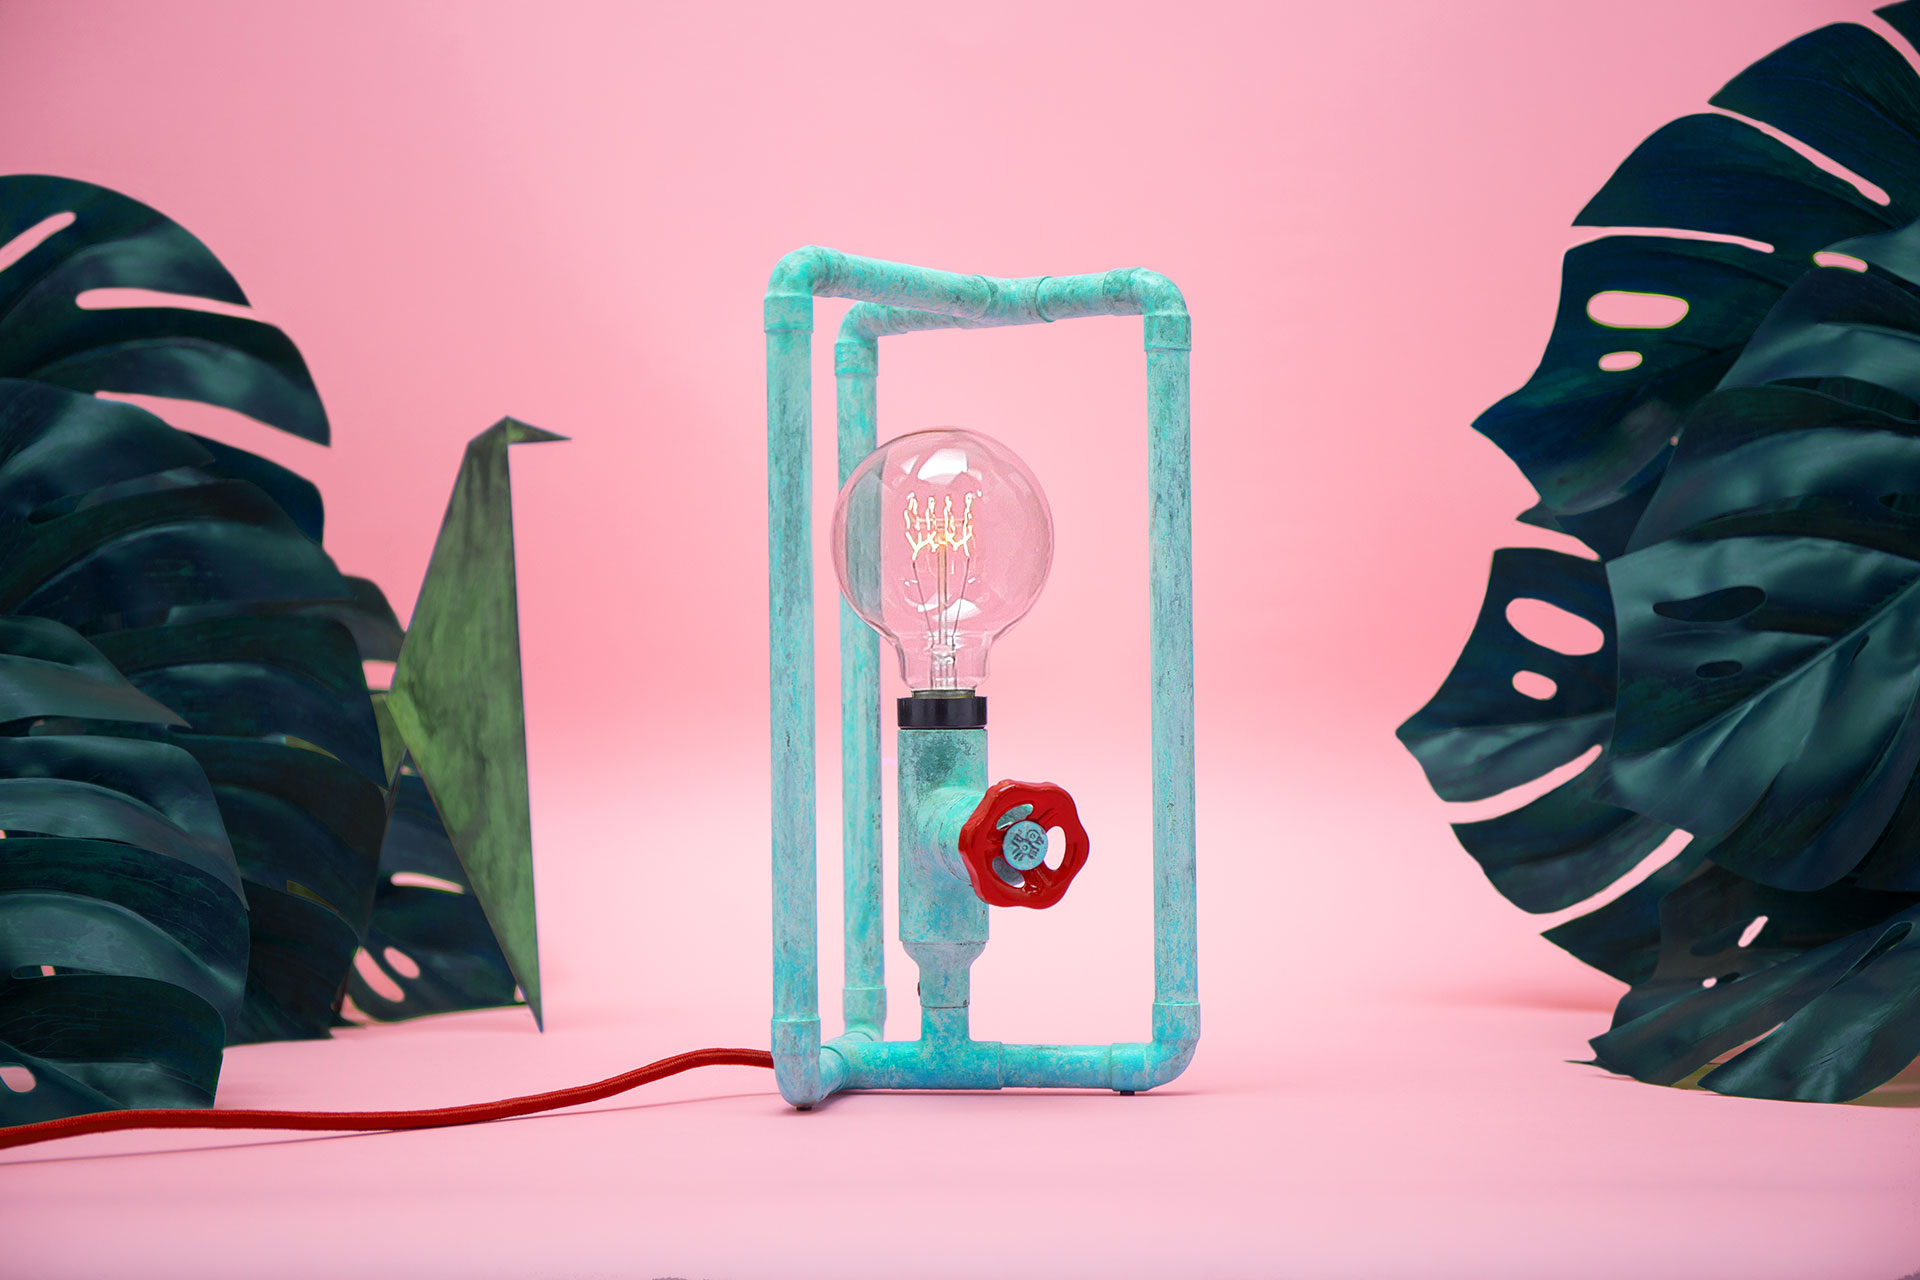 Fun design table lamp in trendy turquoise patina with colorful knob dimmer in millennial pink apartment